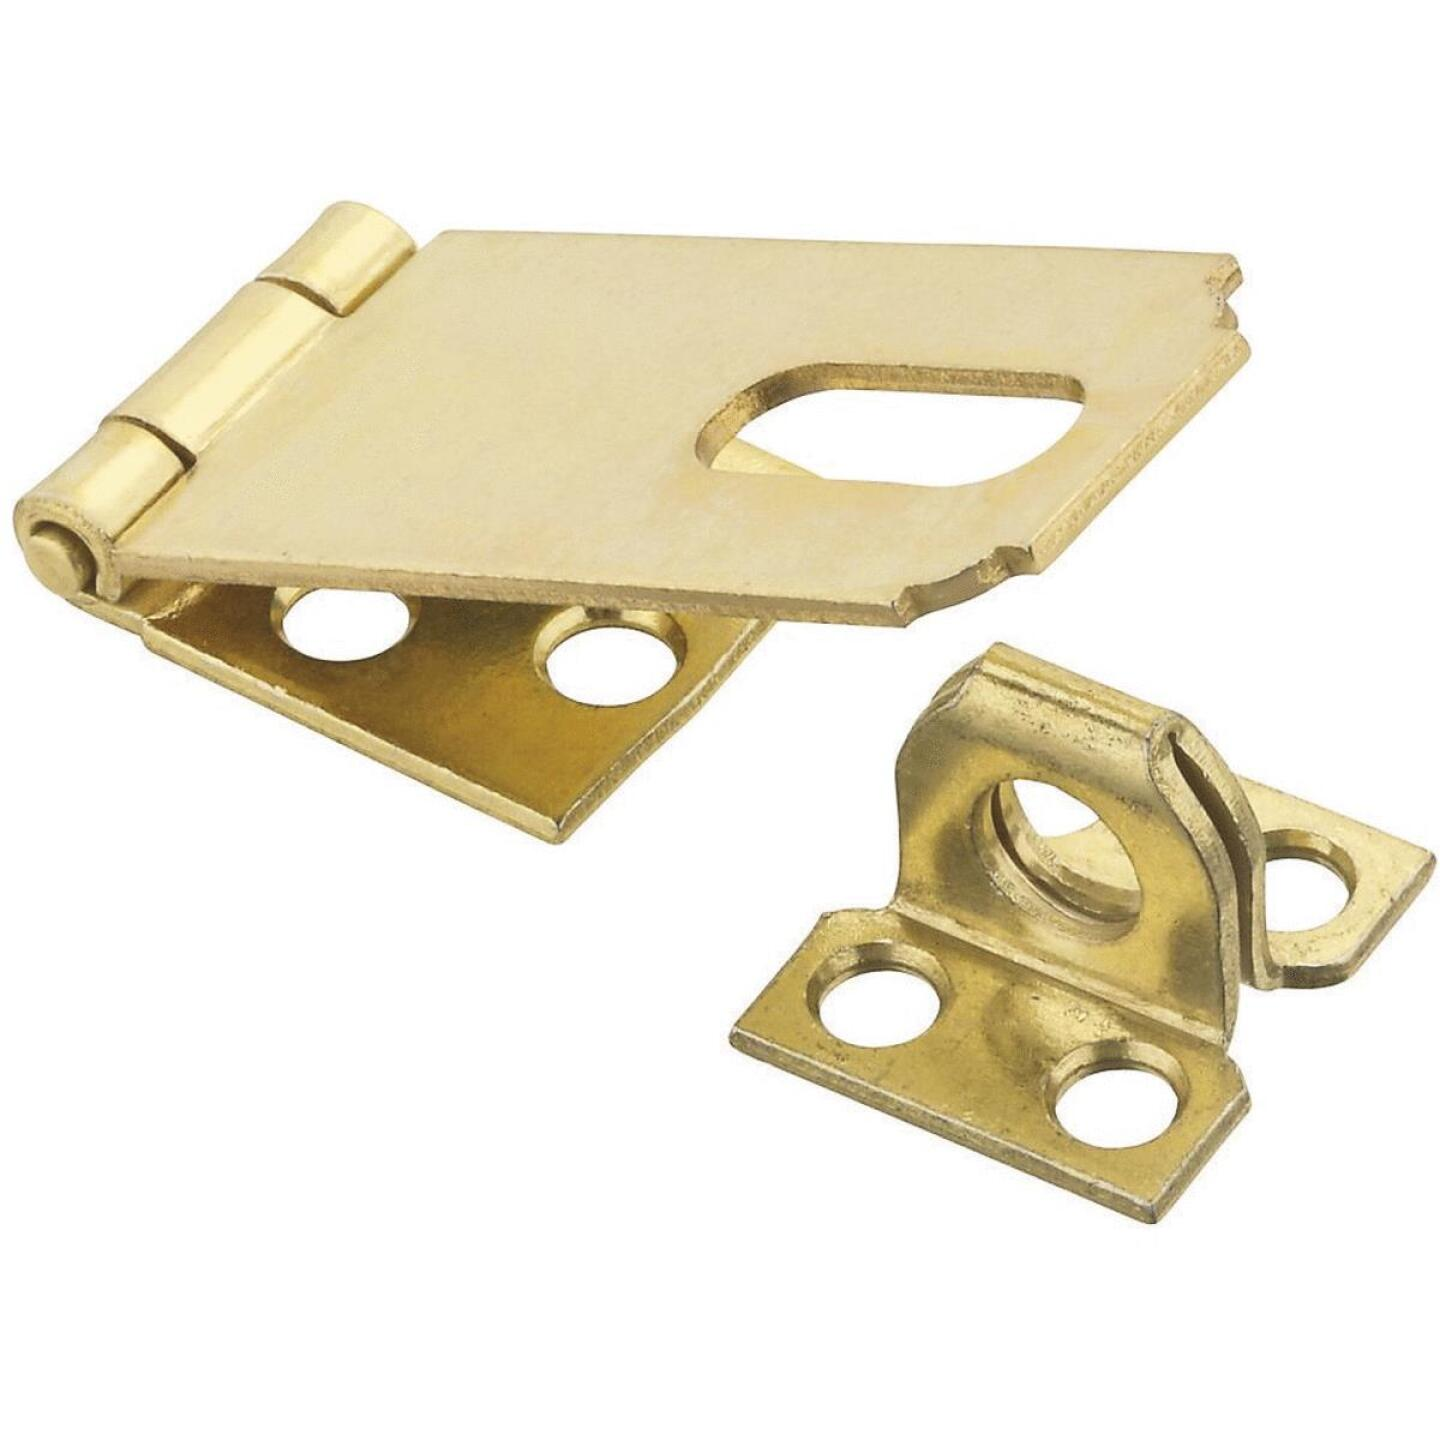 National 2-1/2 In. Brass Non-Swivel Safety Hasp Image 1